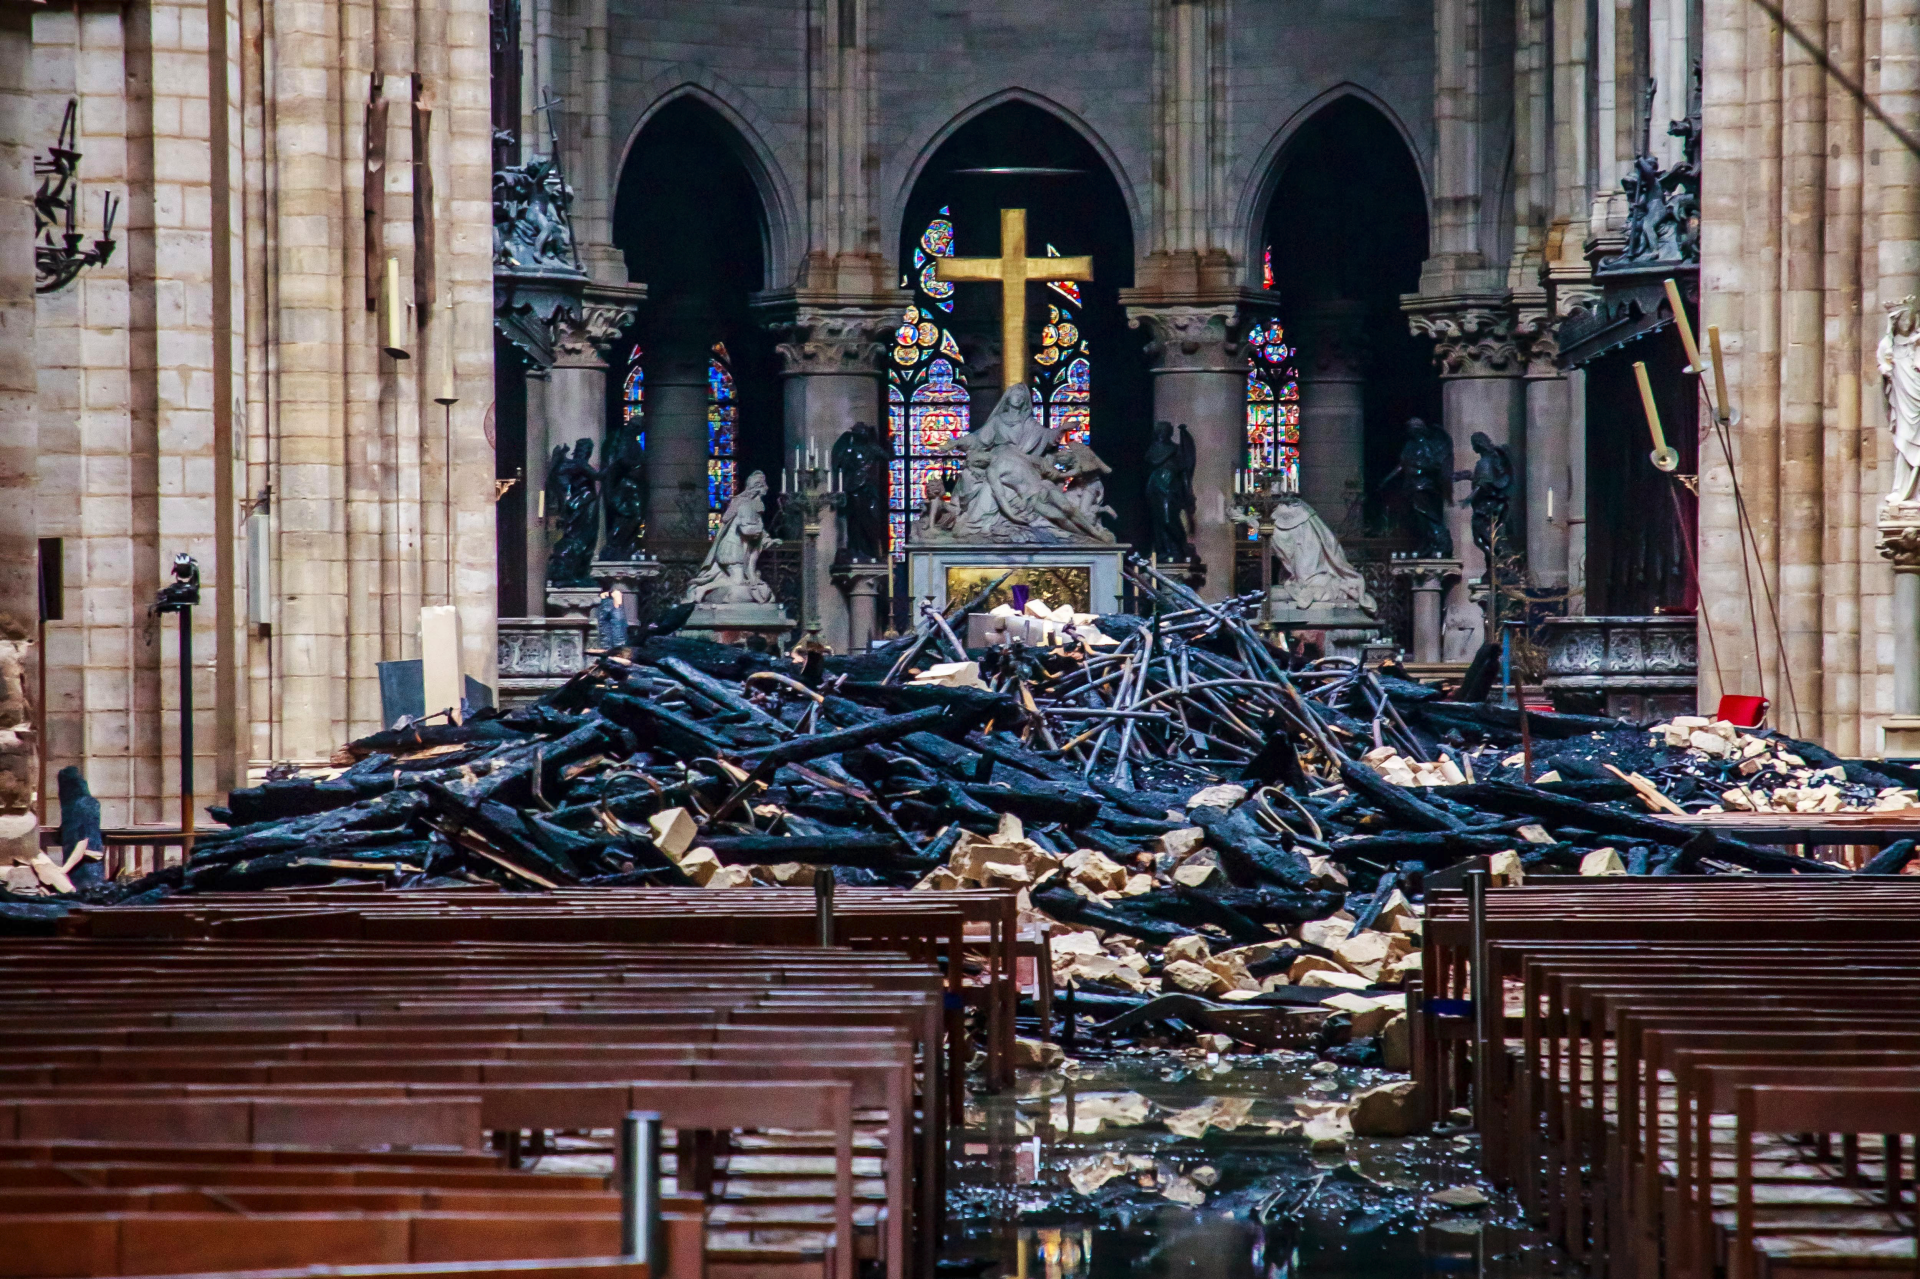 Westlake Legal Group ContentBroker_contentid-8c3f9e29331a47239b69c807eddc48e5 Rebuilding Notre Dame will be long, fraught and expensive JILL LAWLESS and RAF CASERT fox-news/world/world-regions/united-kingdom fox-news/world/world-regions/europe fox-news/world fnc/world fnc d16a2f1e-5585-5bd5-8101-f2b0ea6551a2 Associated Press article